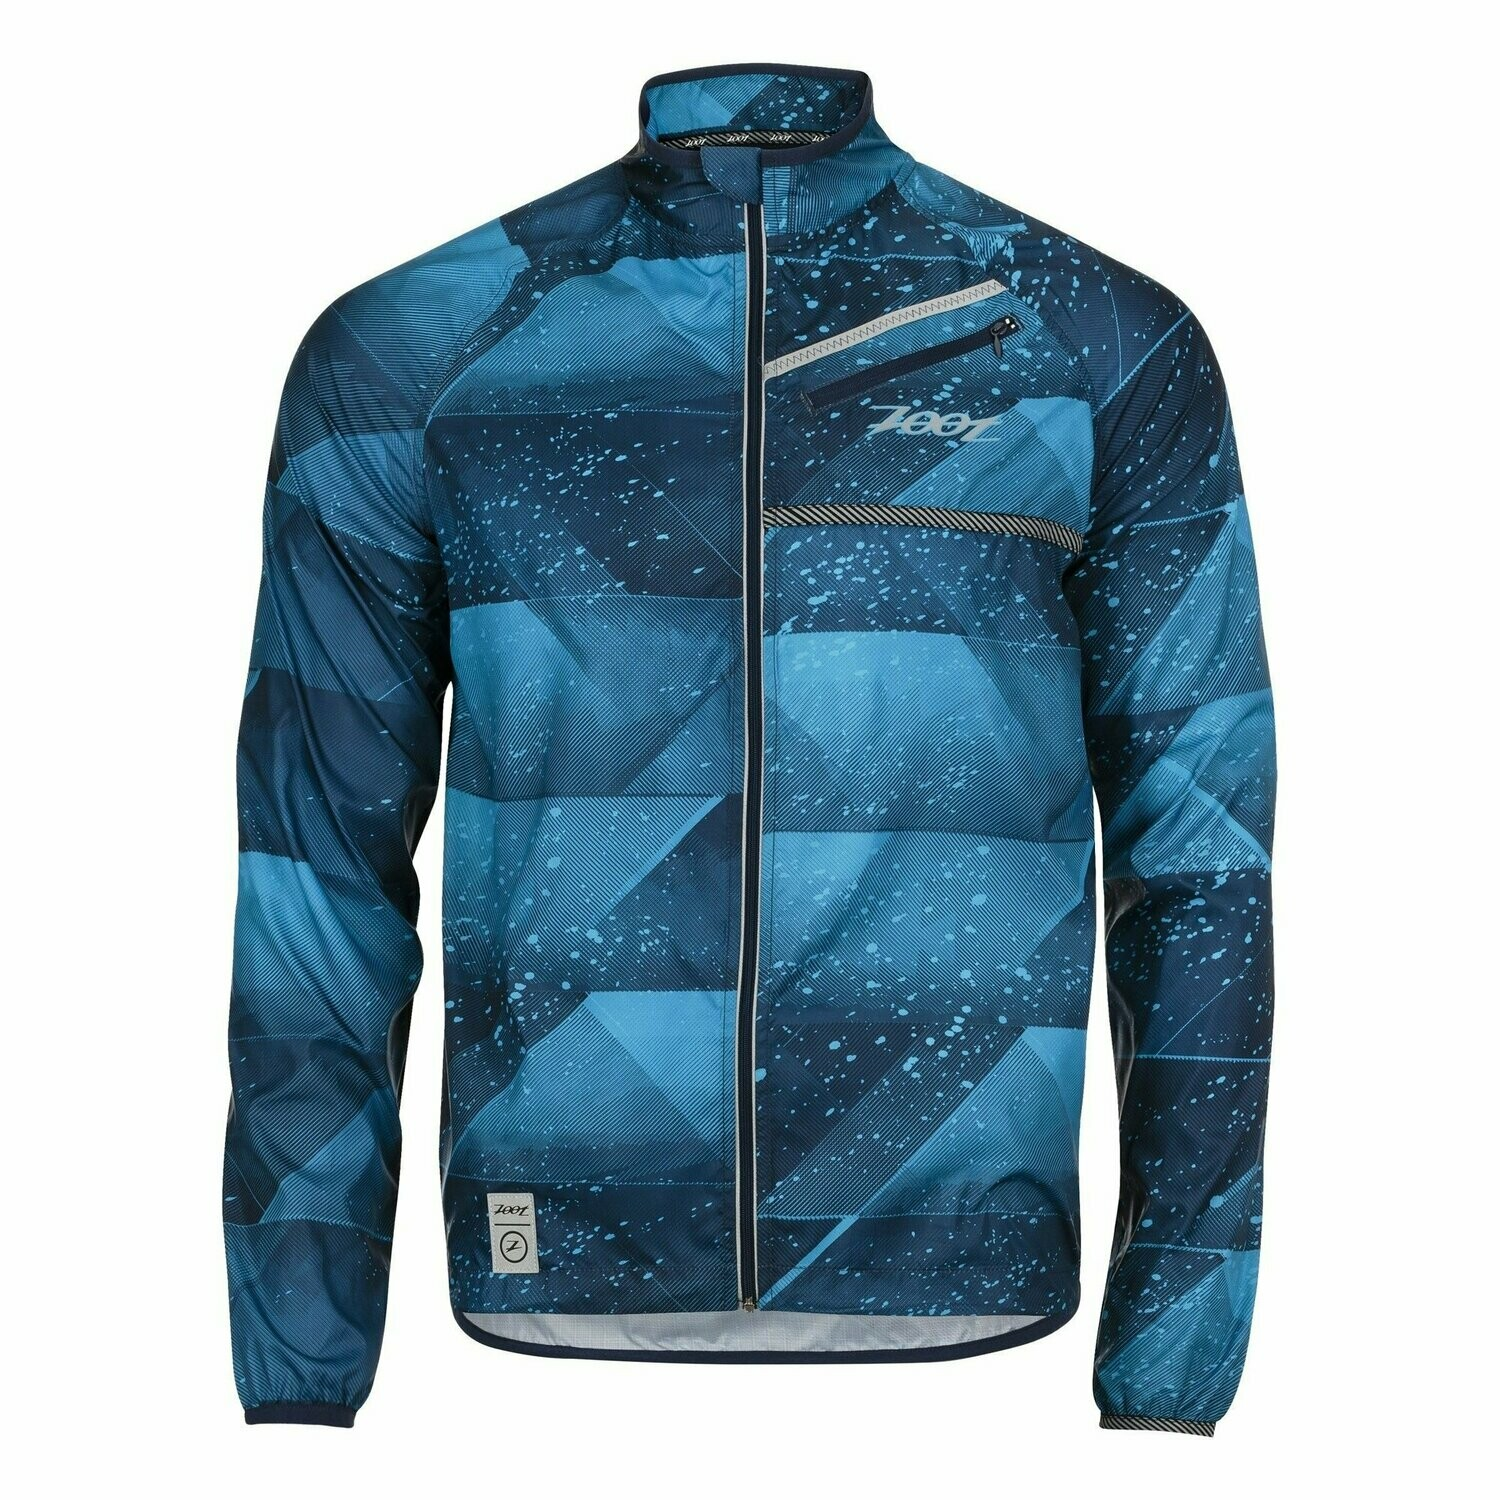 Zoot Wind Swell Jacket